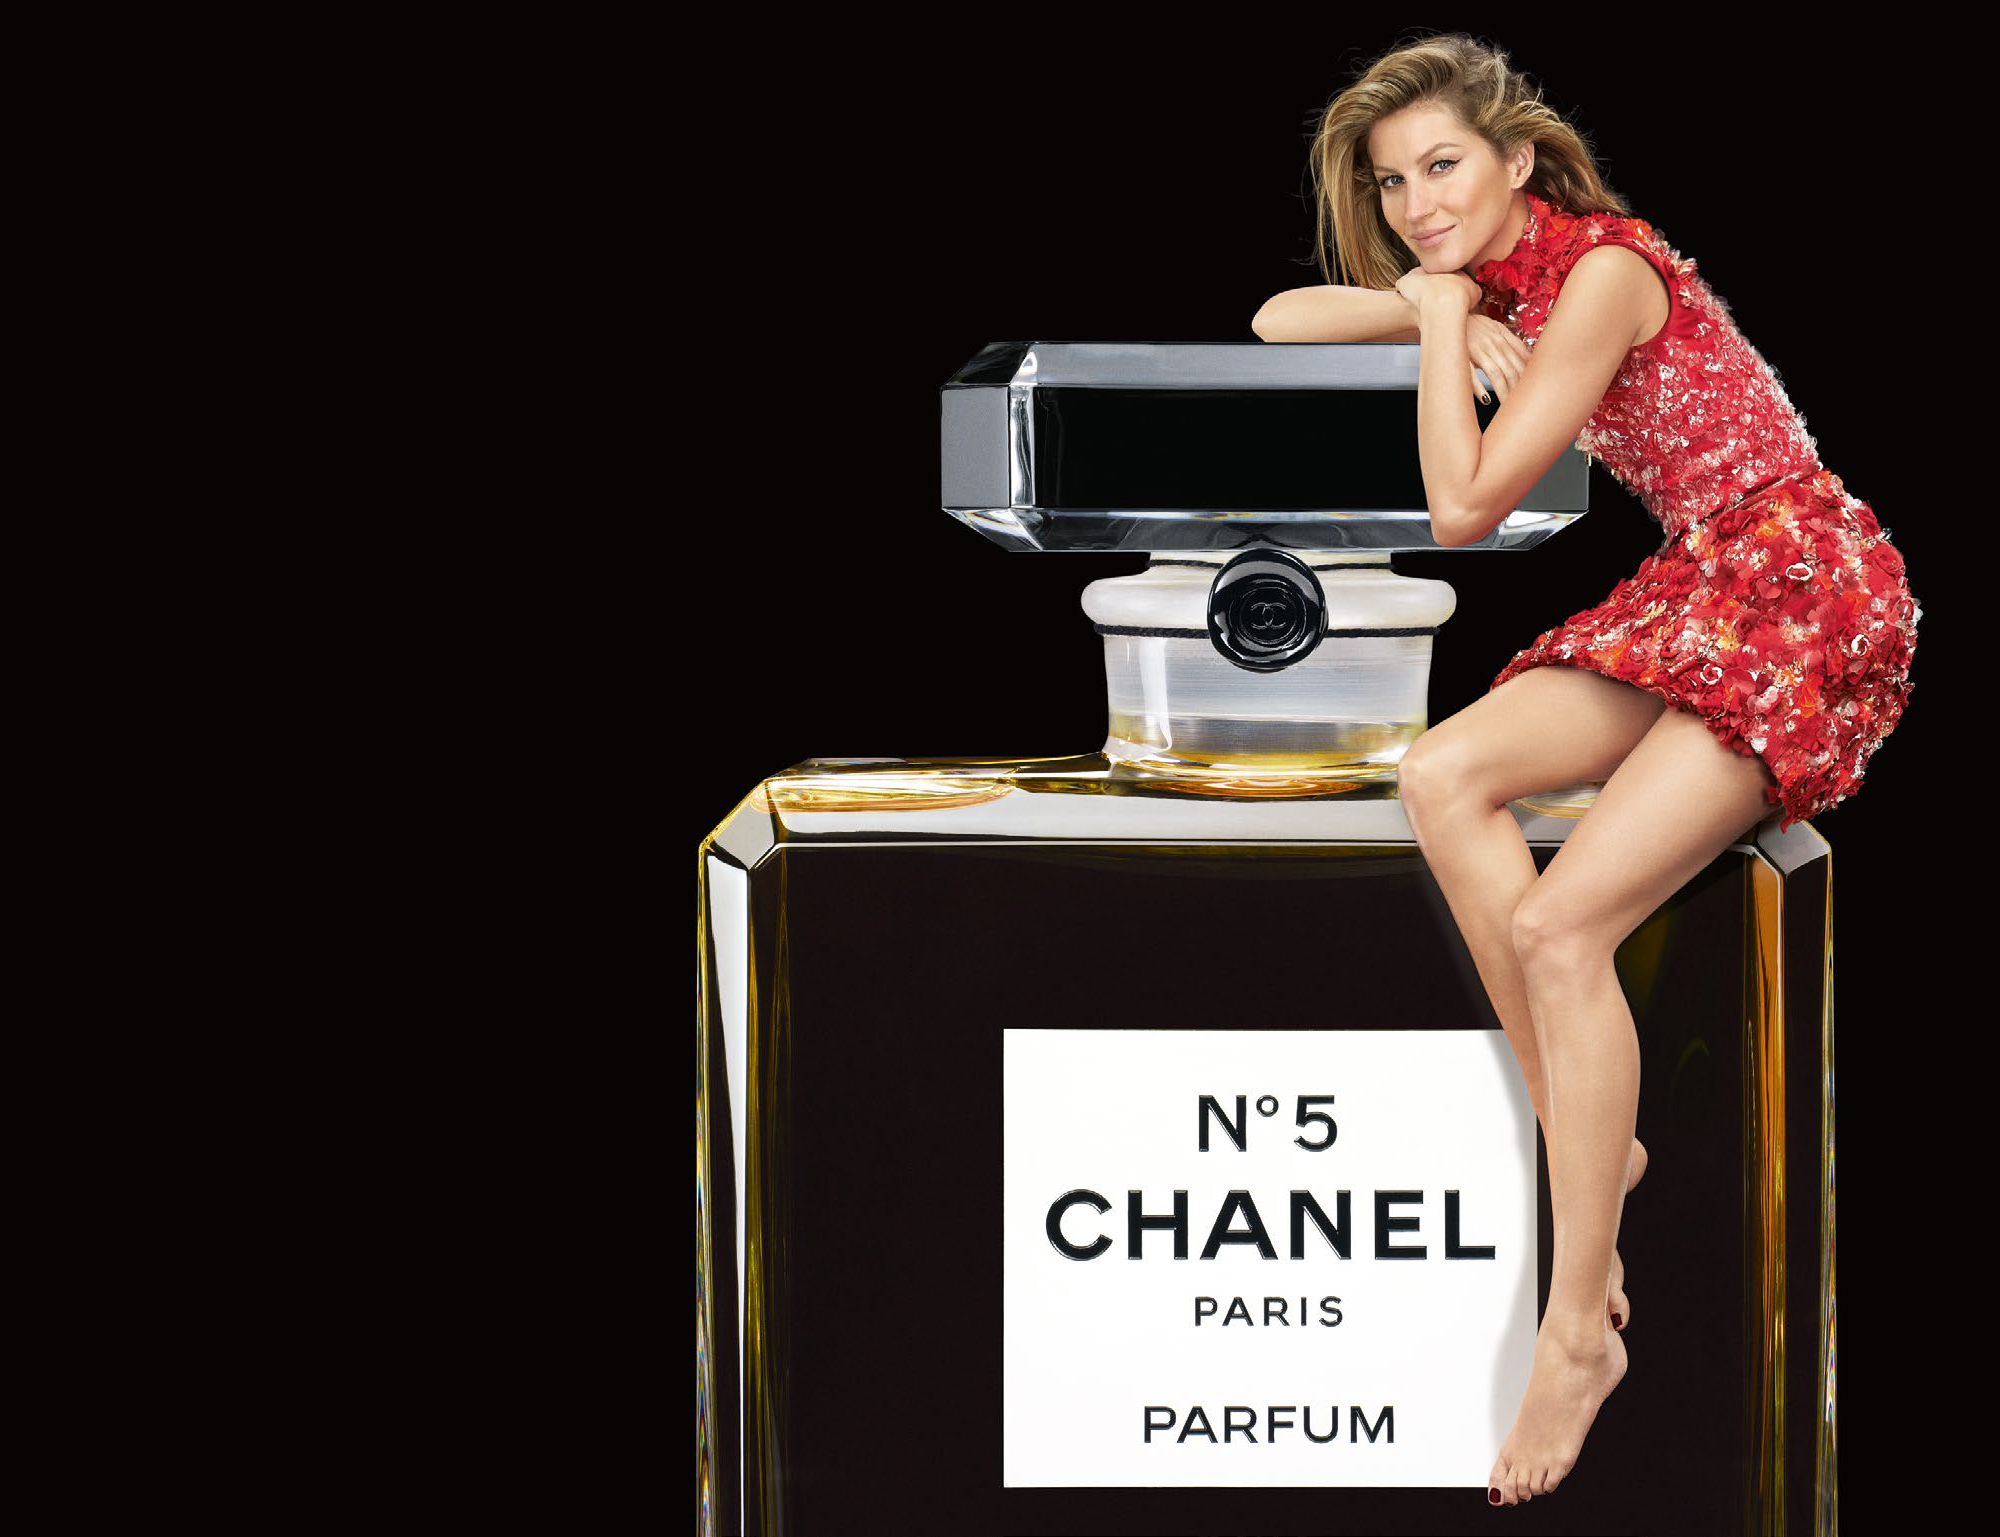 Chanel No 5 Holiday – Patrick Demarchelier